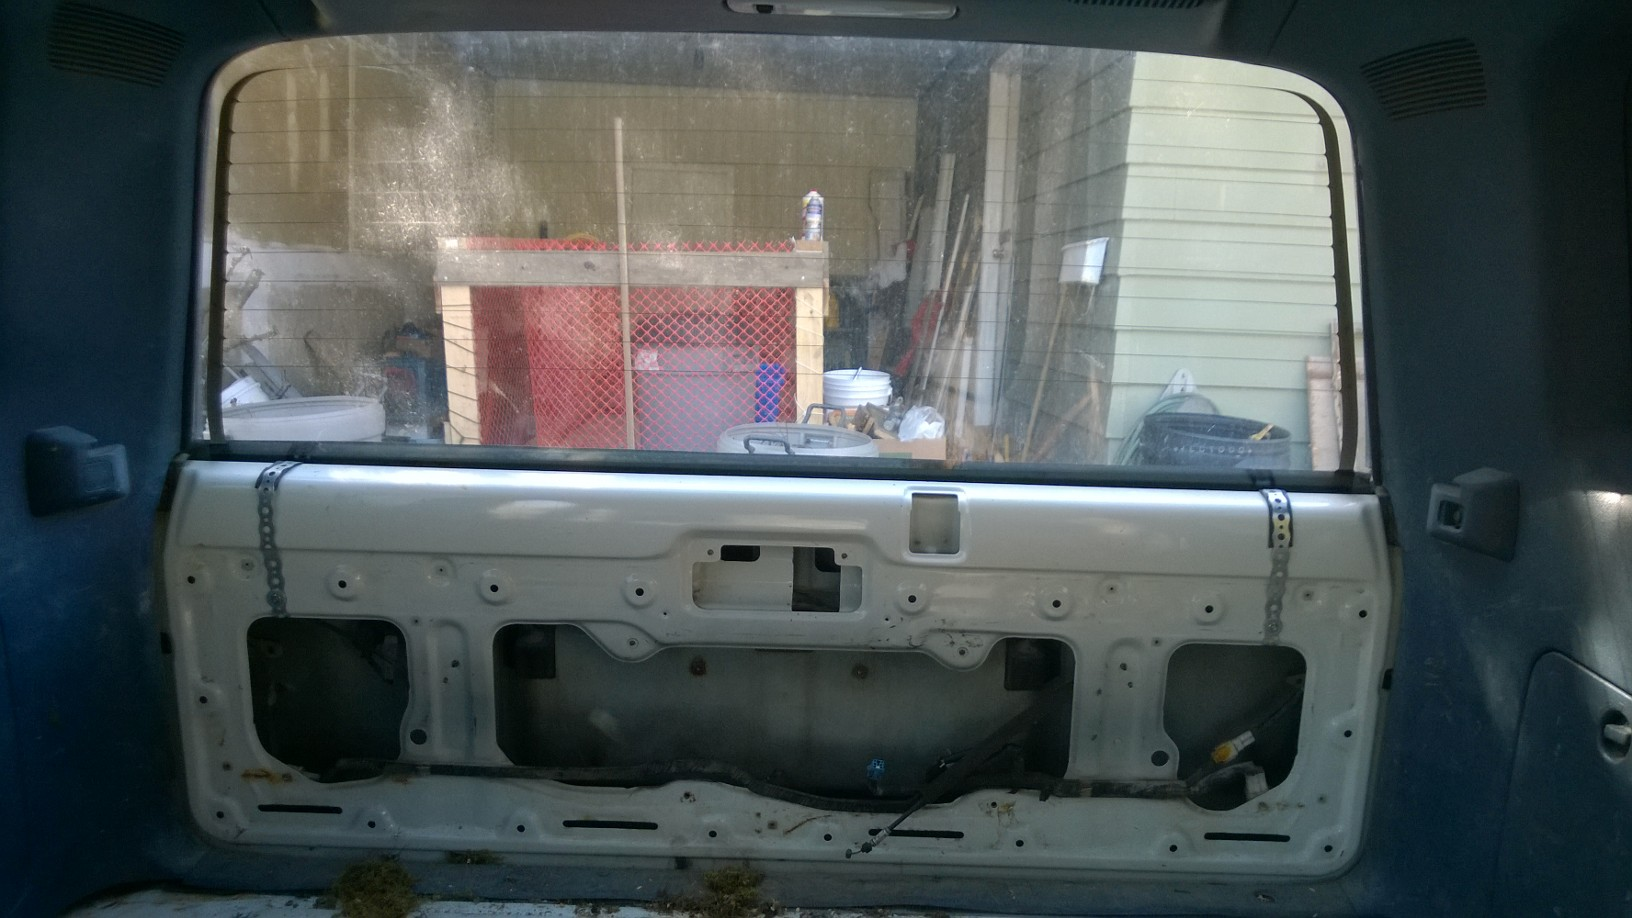 hight resolution of  4runner rear window repair walkthrough wp 20140412 001 jpg